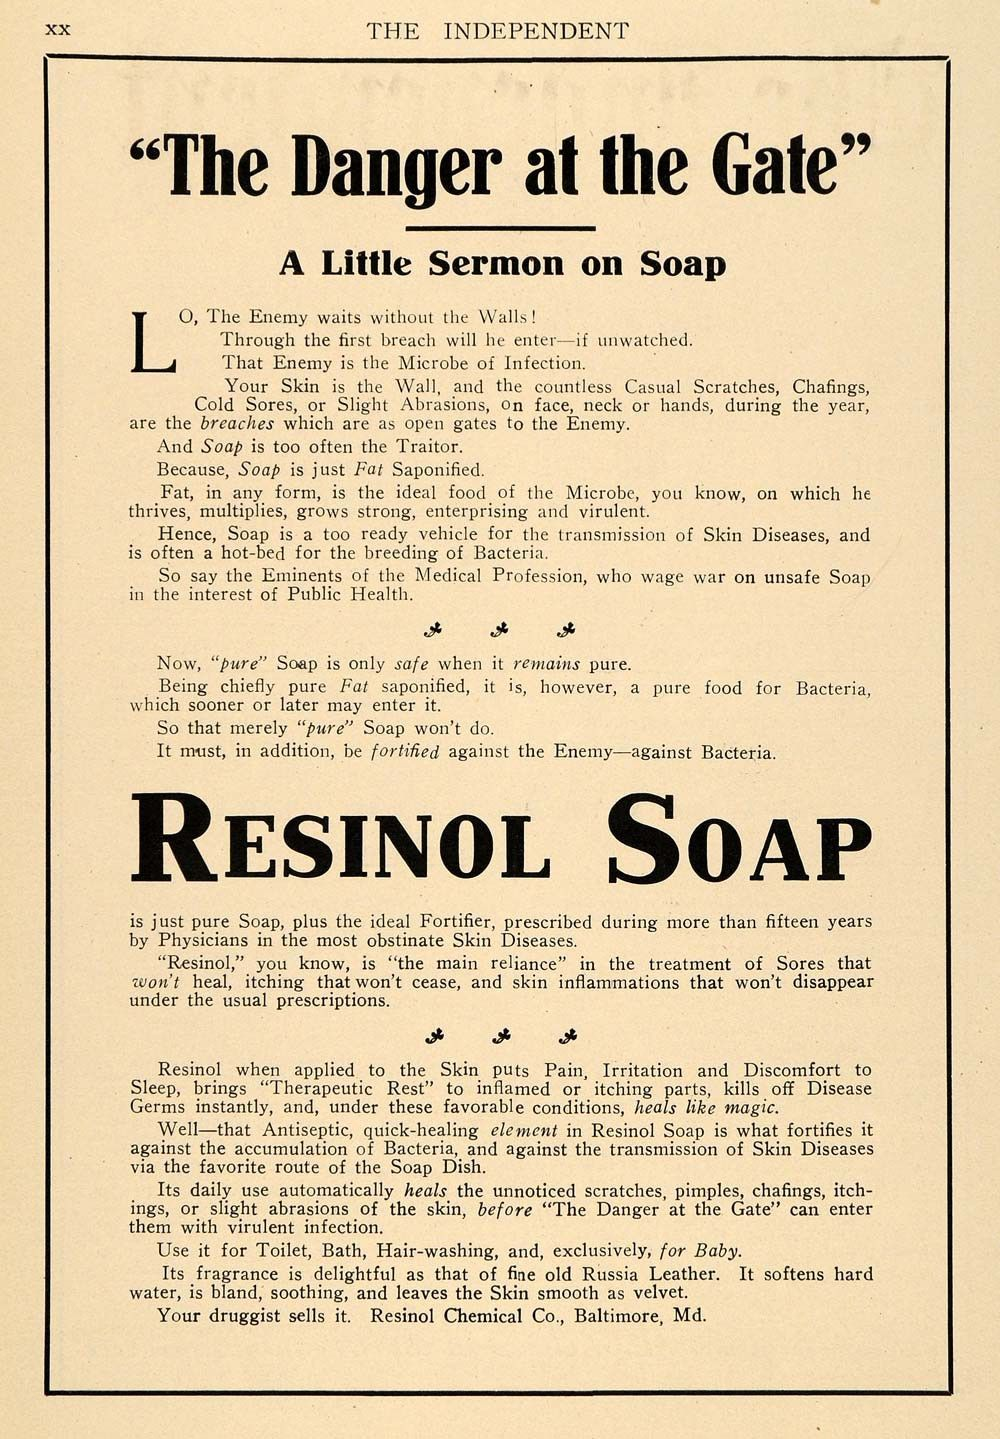 1911 Ad. Resinol Soap. The Danger at the Gate. Skin Care.